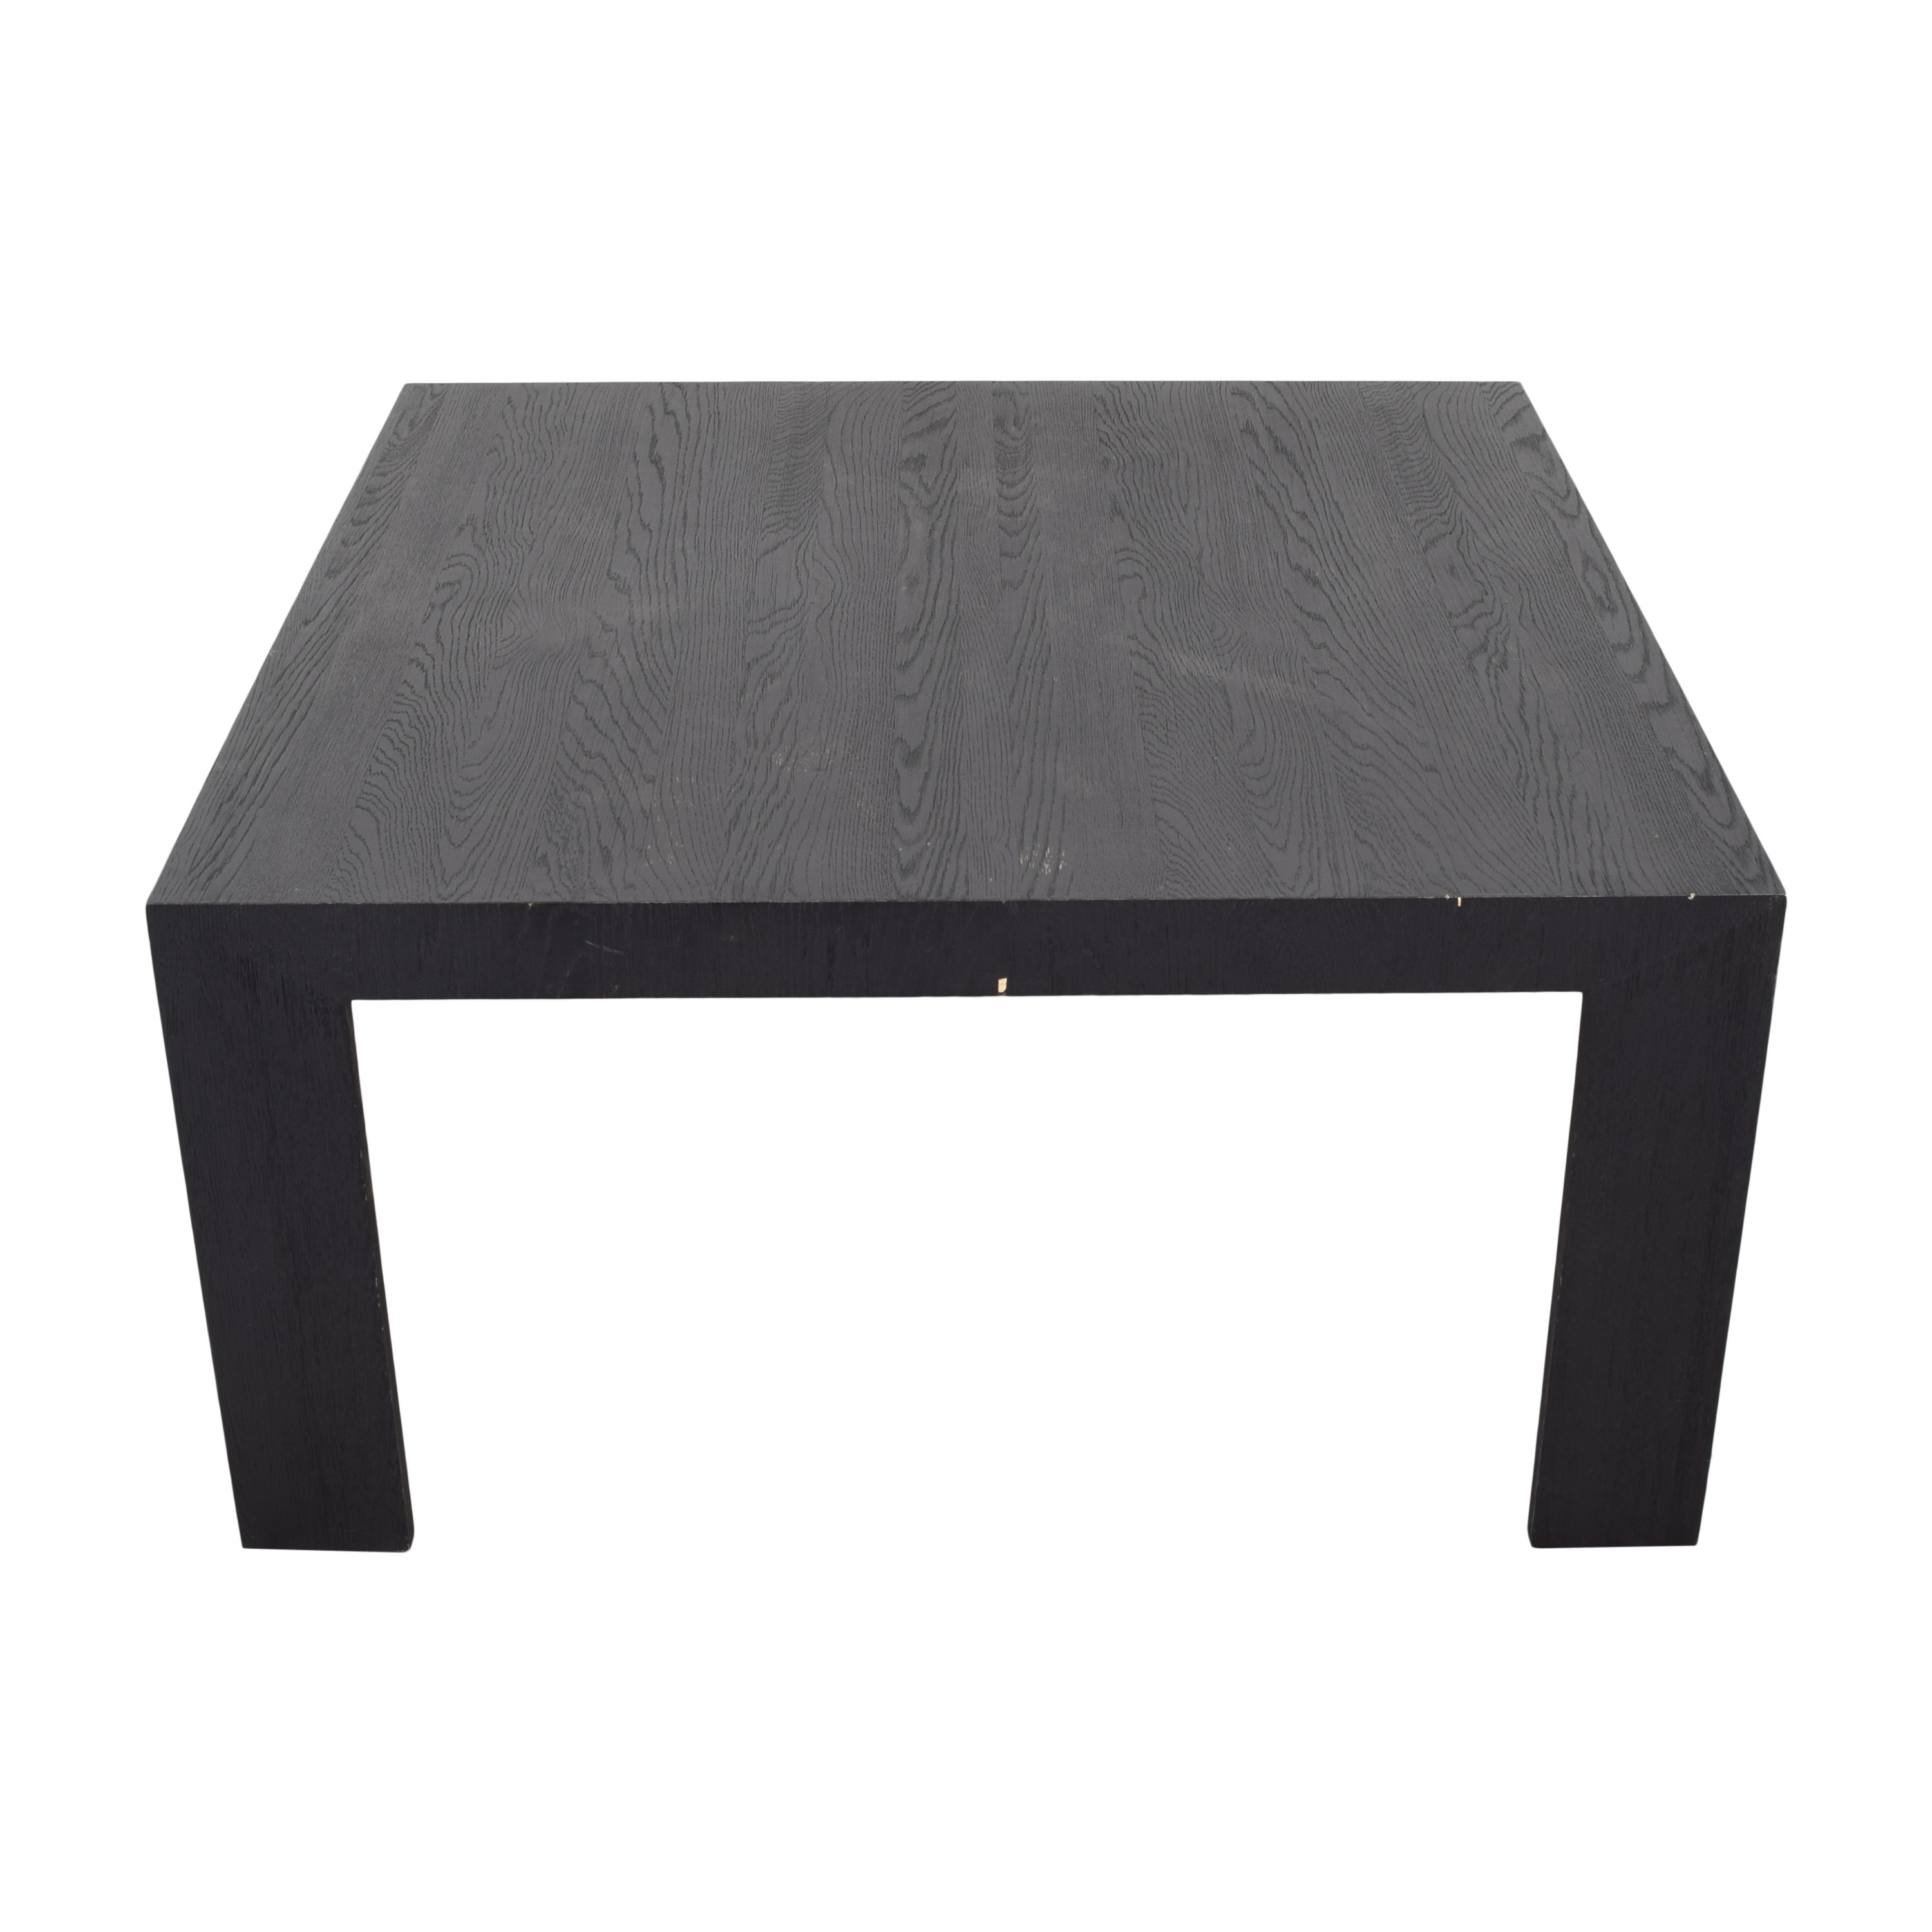 Restoration Hardware Machinto Square Dining Table sale